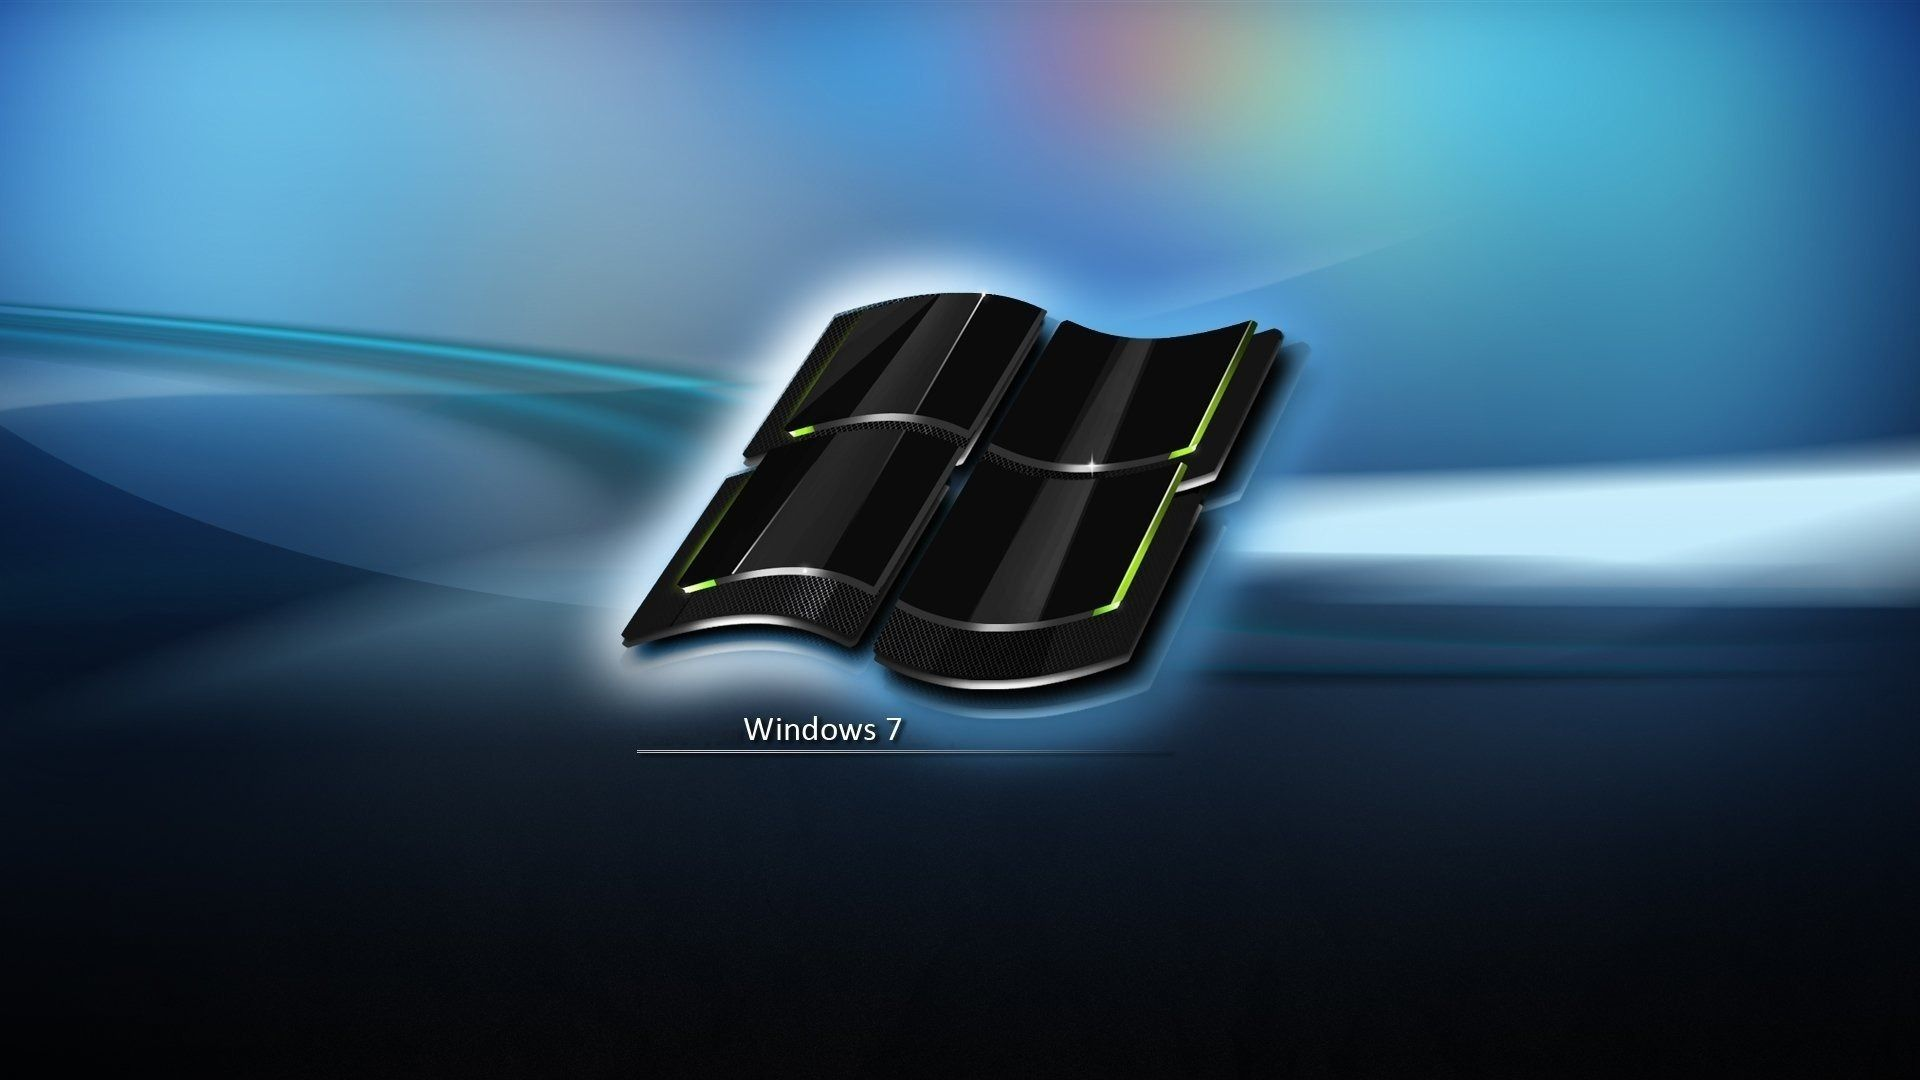 Wallpaper Download 5120x3200 Windows 7 Logo 3d Wallpaper Awesome 3d And Hd Wallpapers For Laptop Computer Wallpaper Desktop Wallpapers Computer Wallpaper Hd